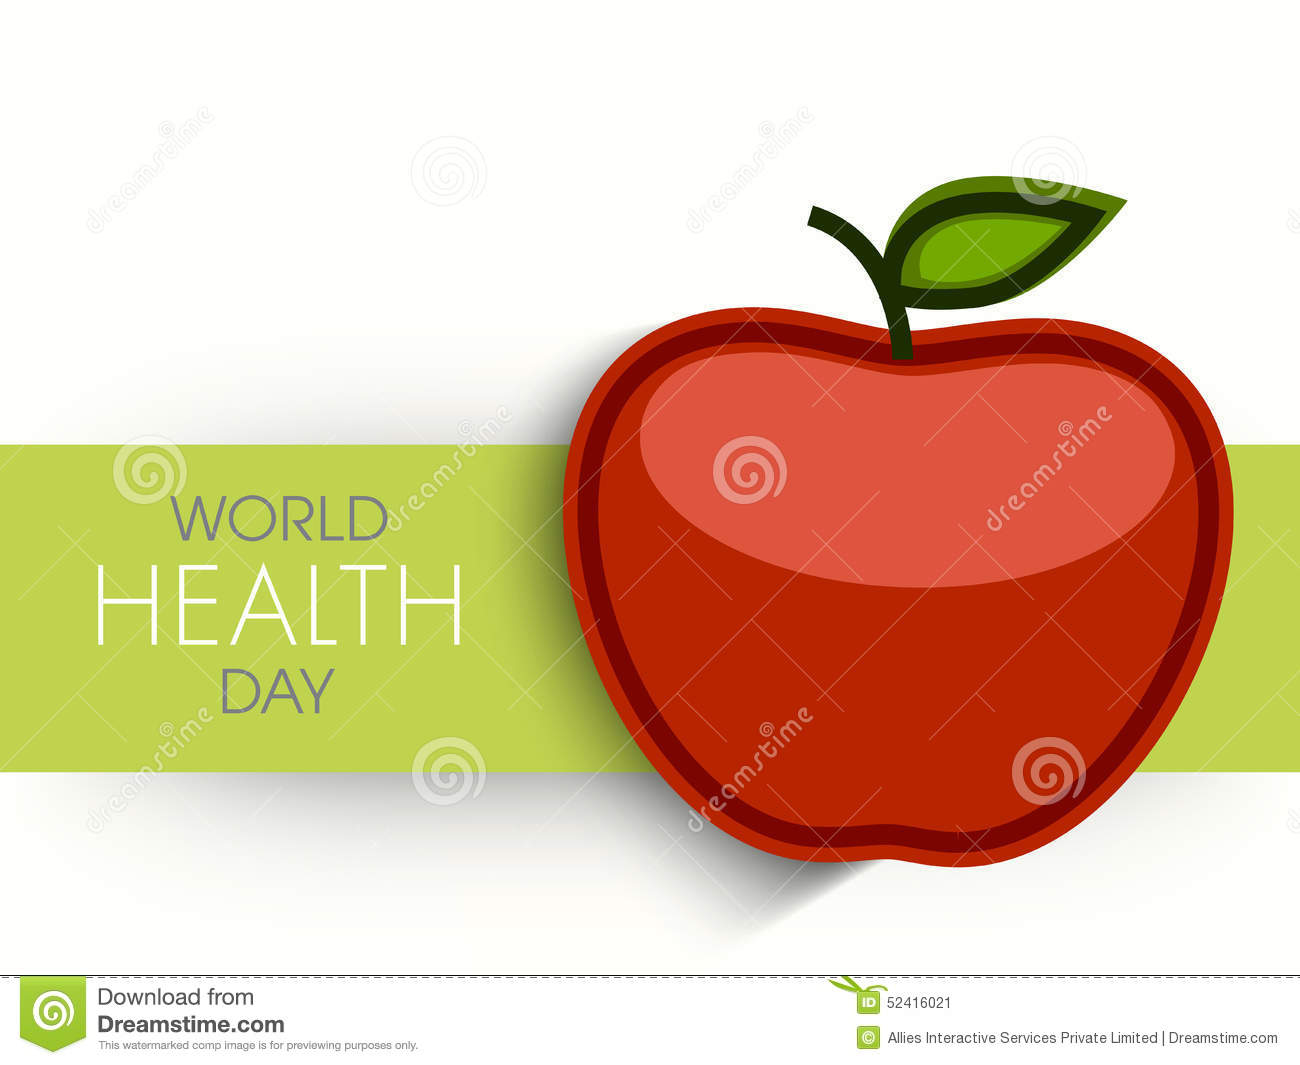 Poster design health - Poster Banner Or Flyer With Apple For World Health Day Stock Image